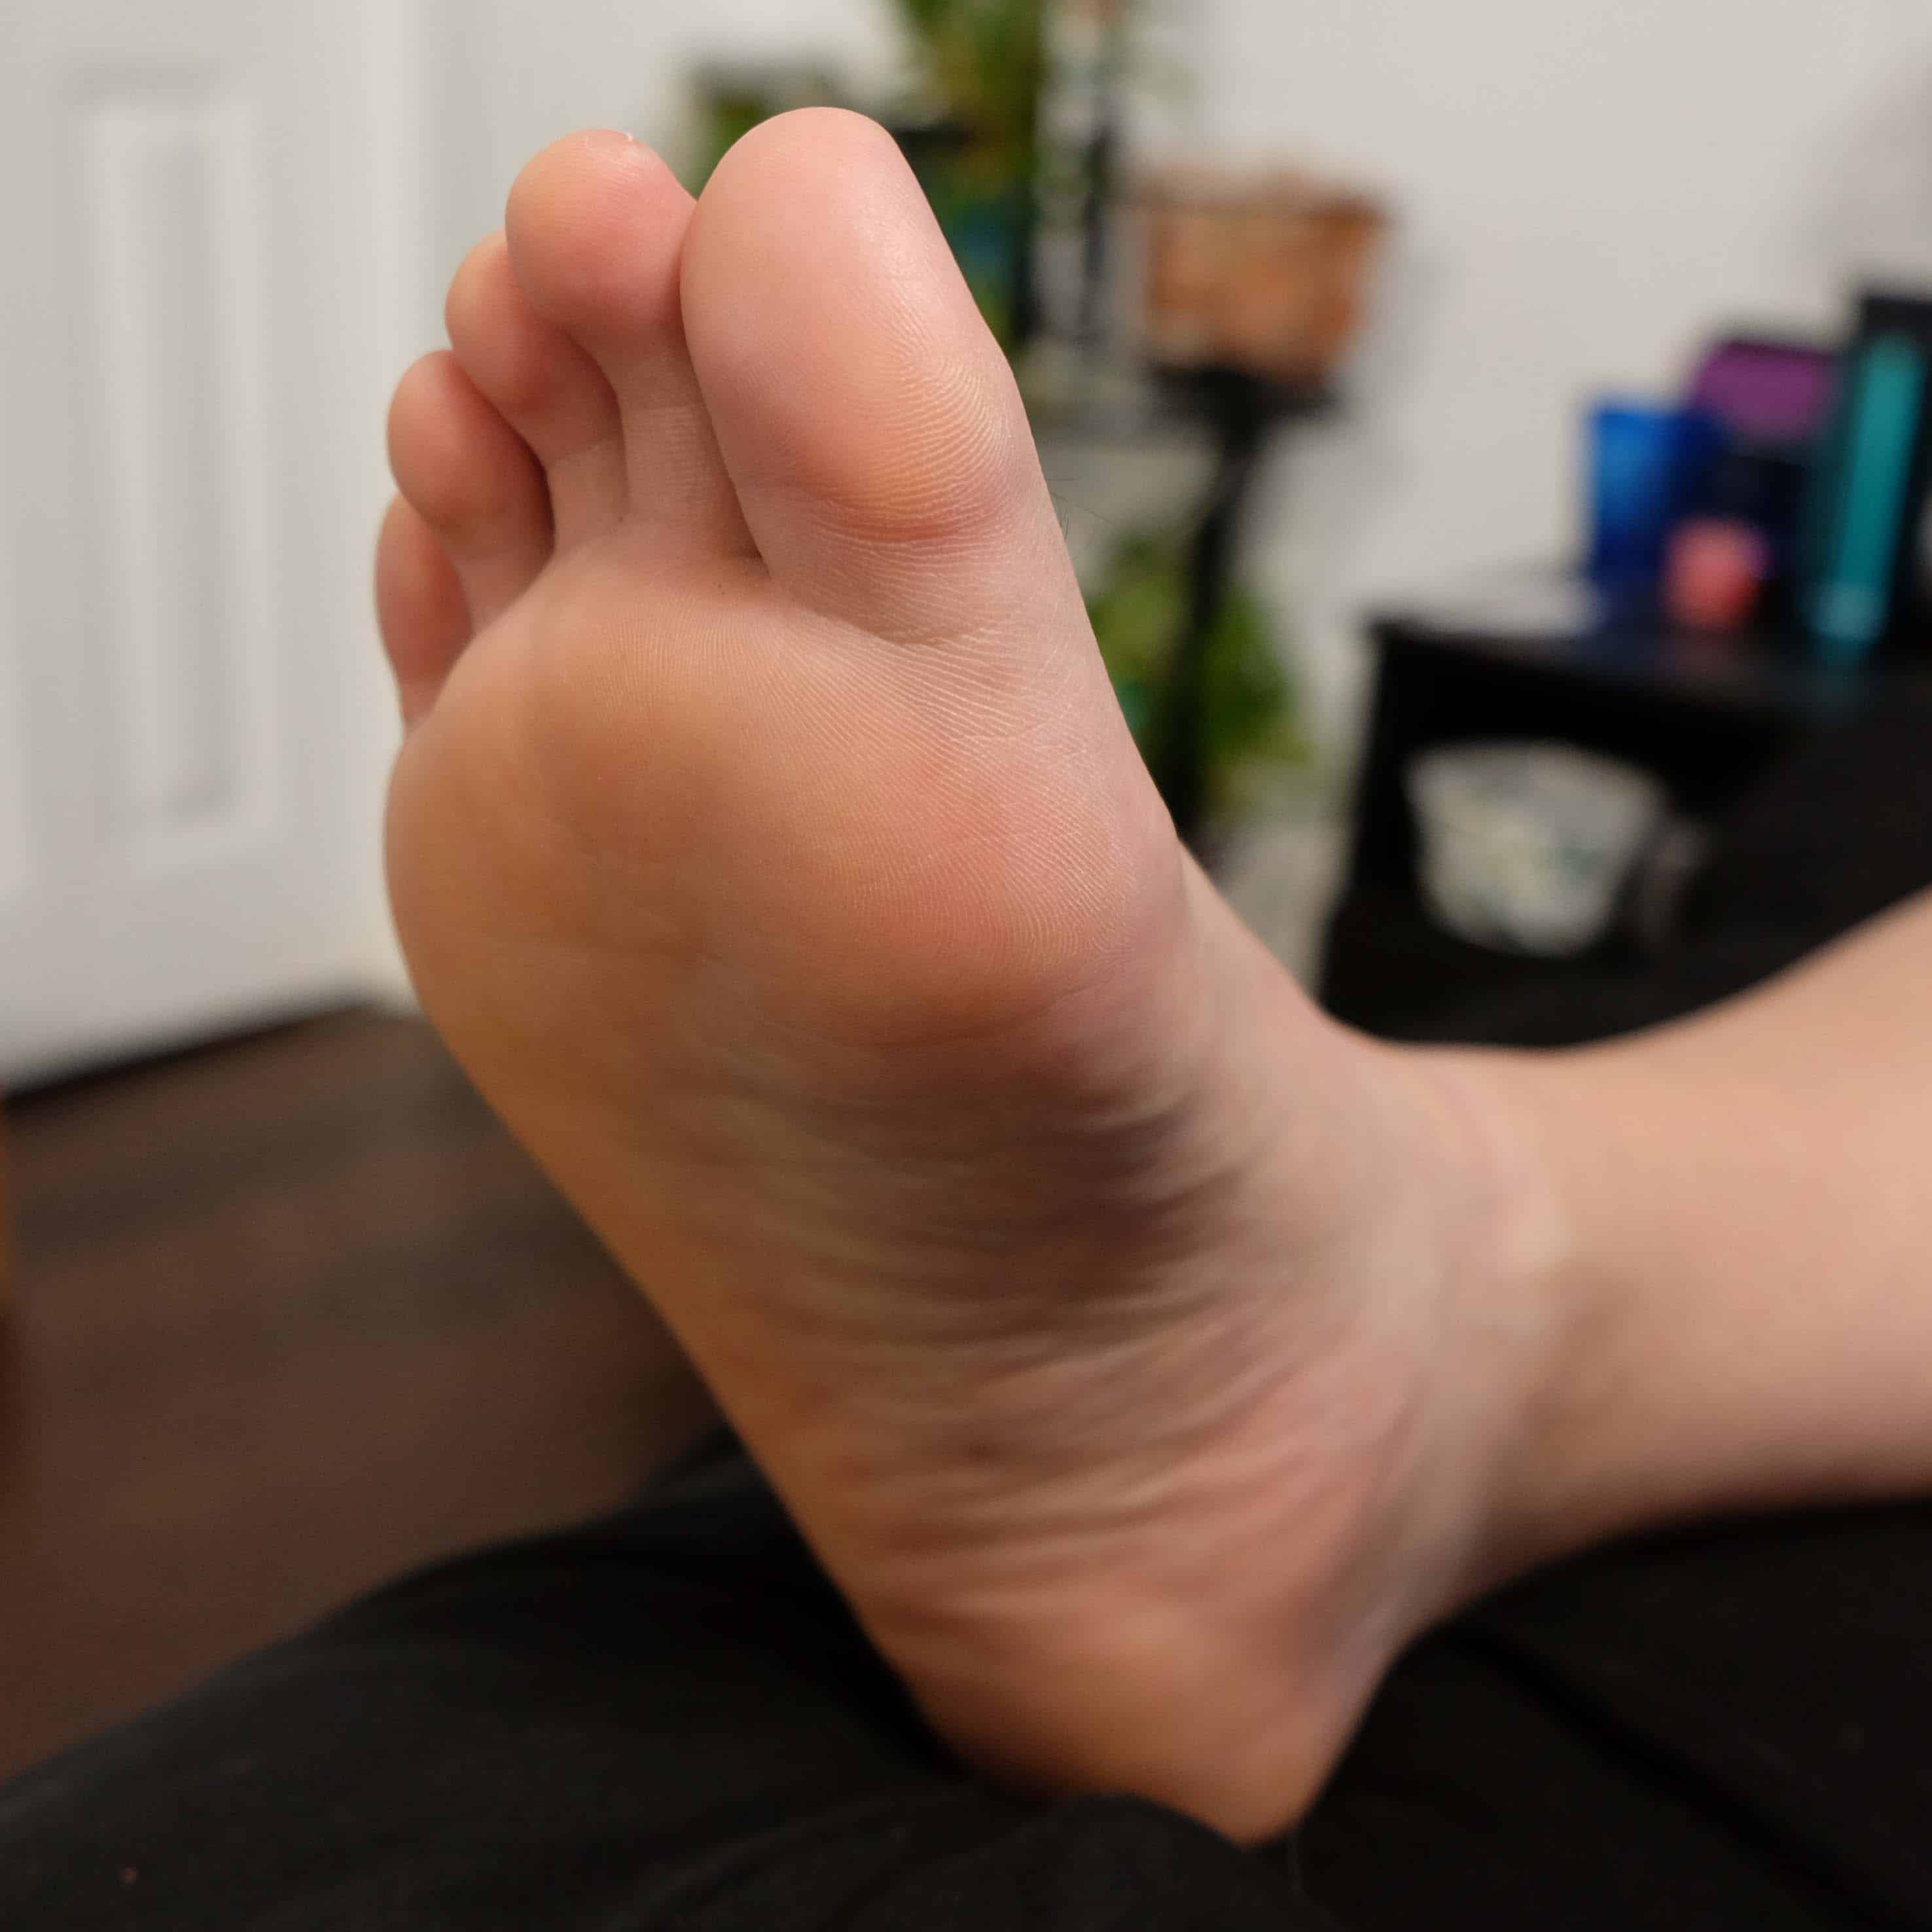 Bottom of a persons foot